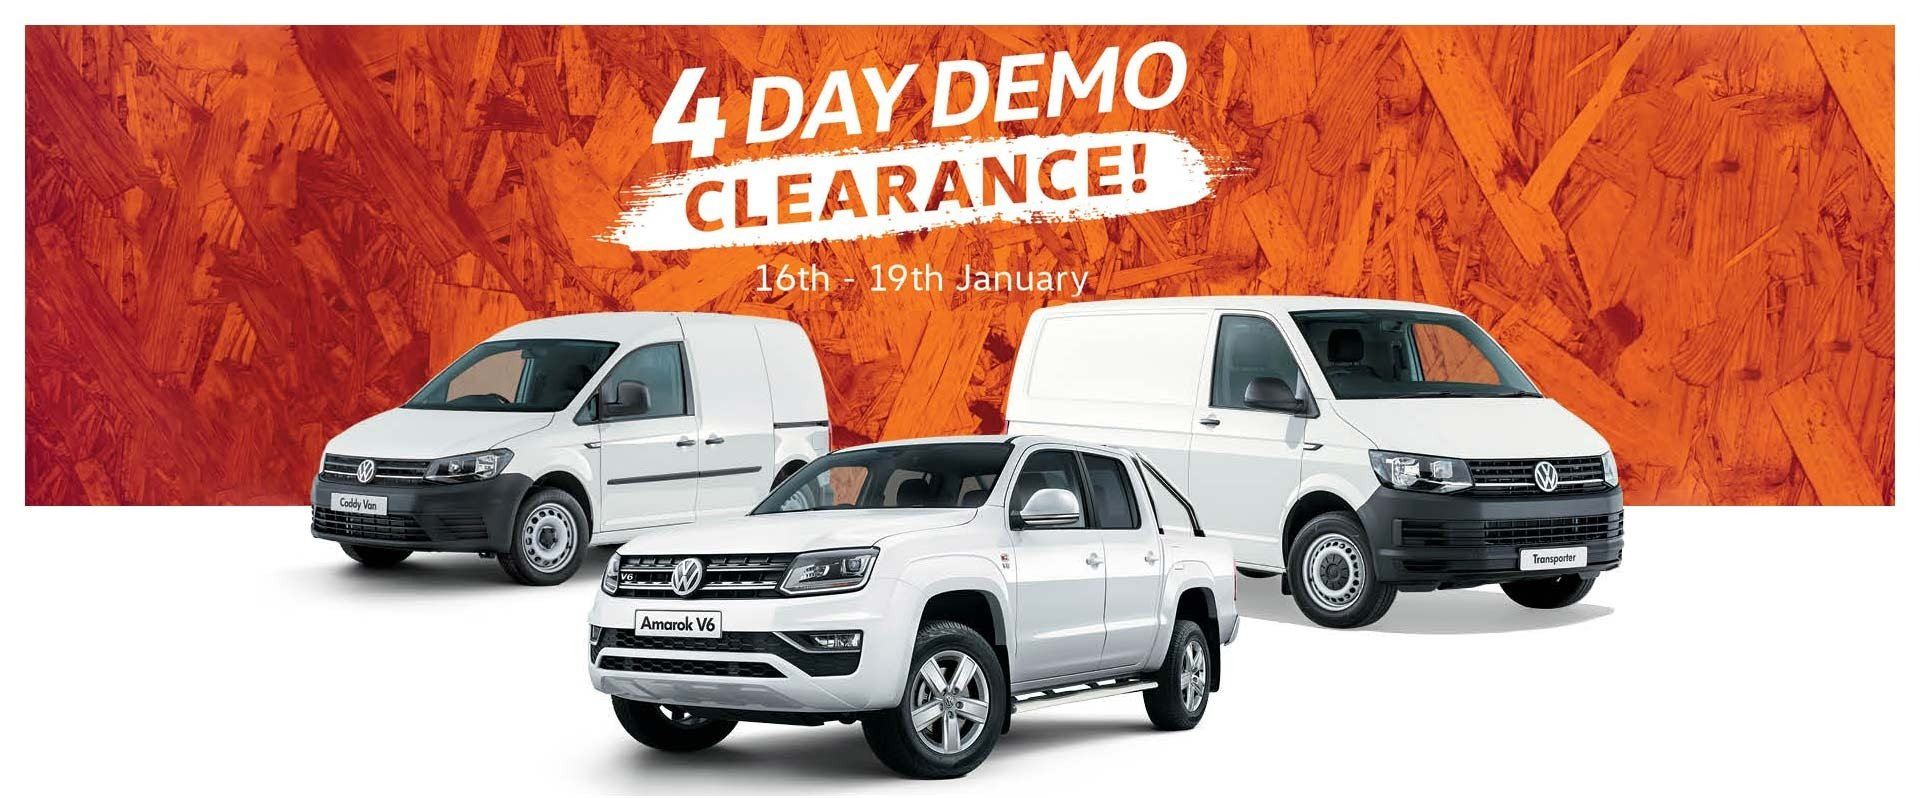 4 Day Demo Clearance